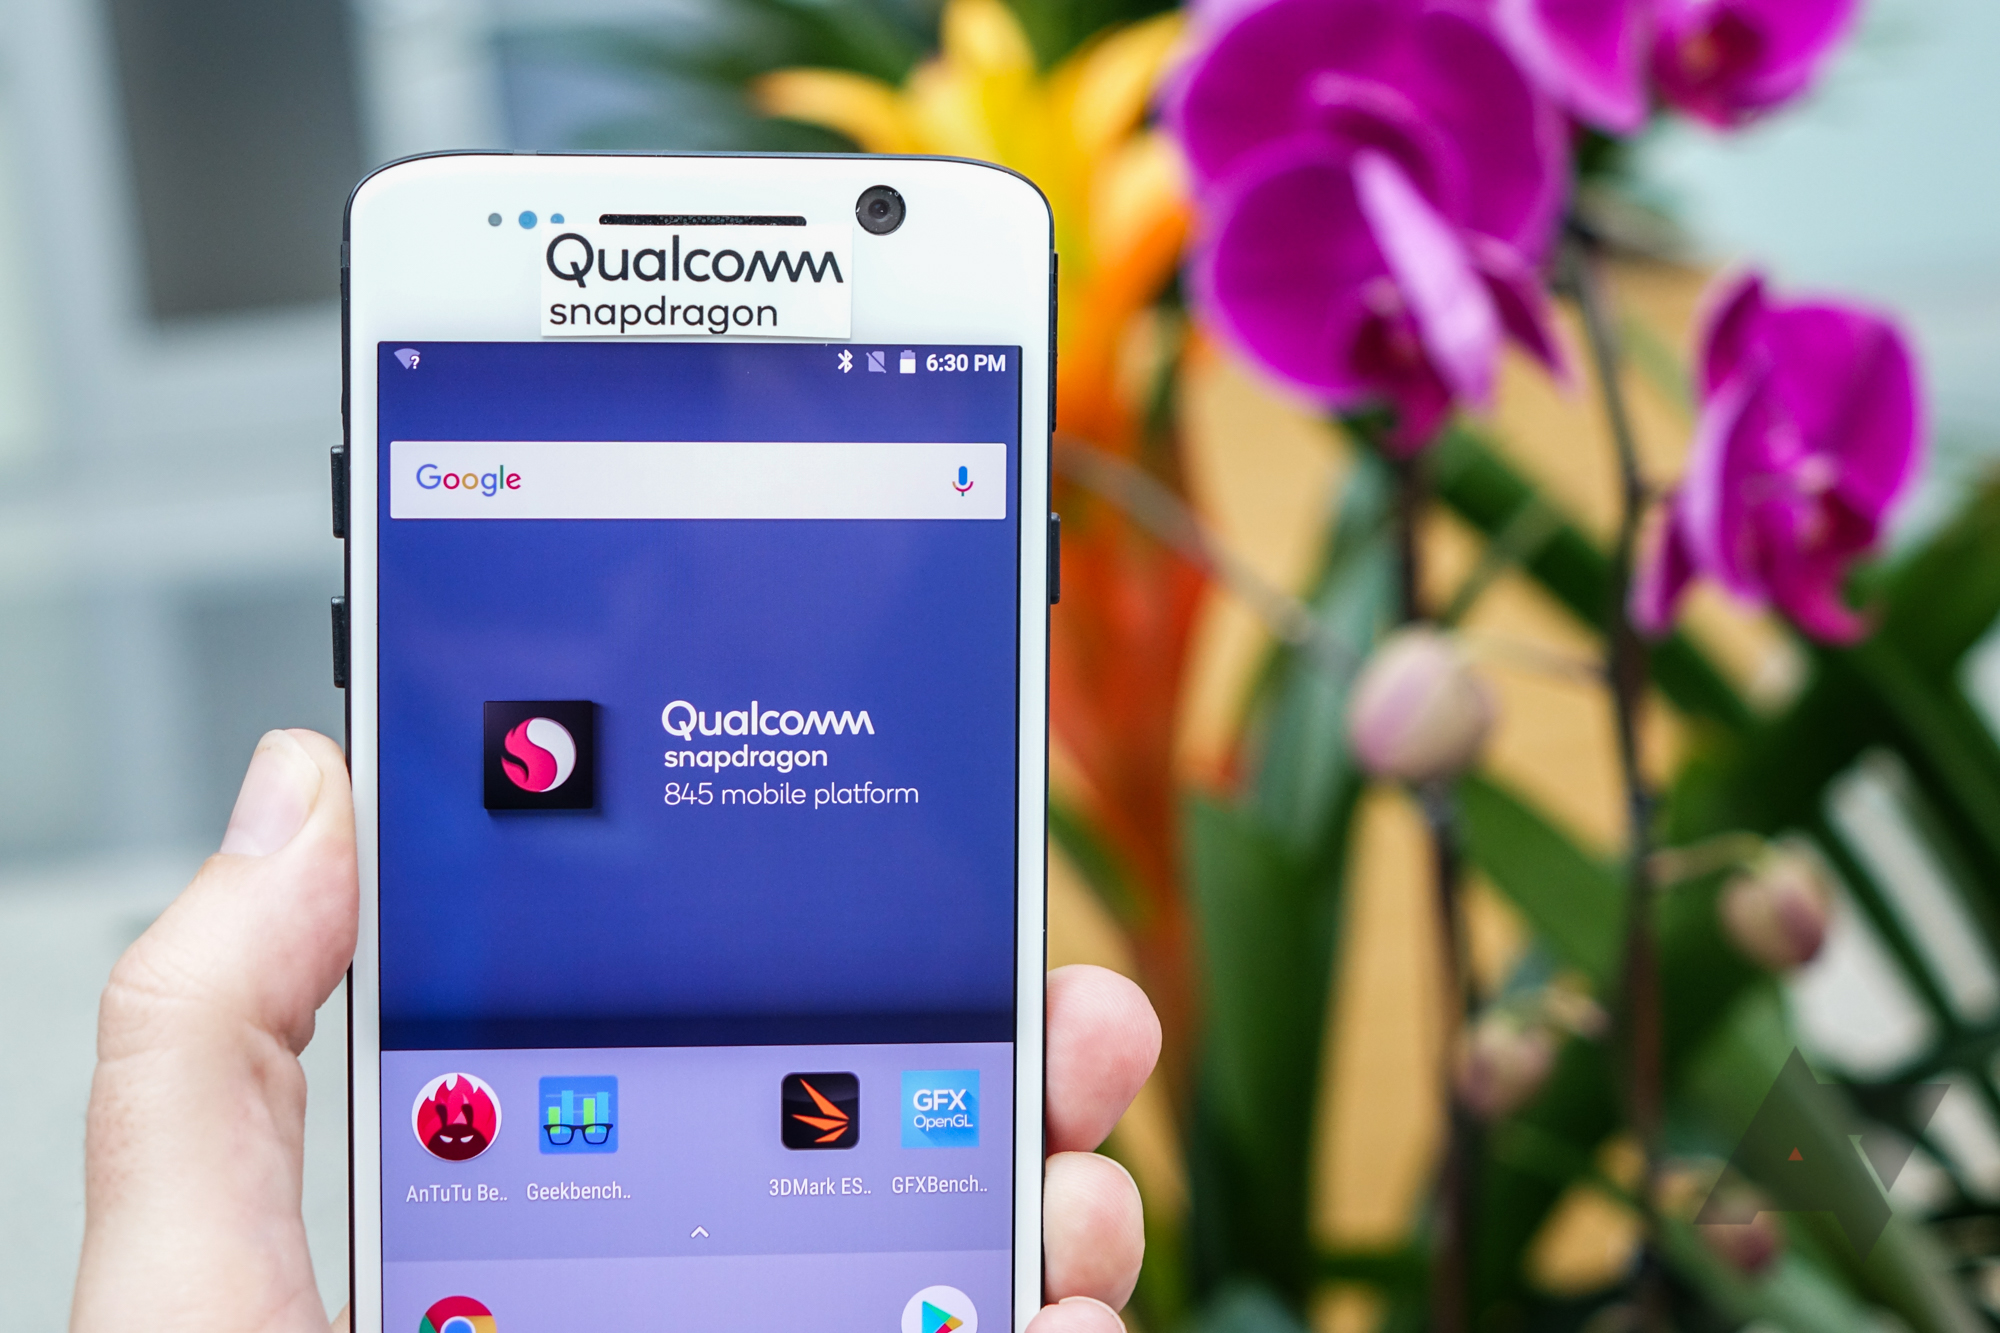 Qualcomm Snapdragon 845: The first benchmark results